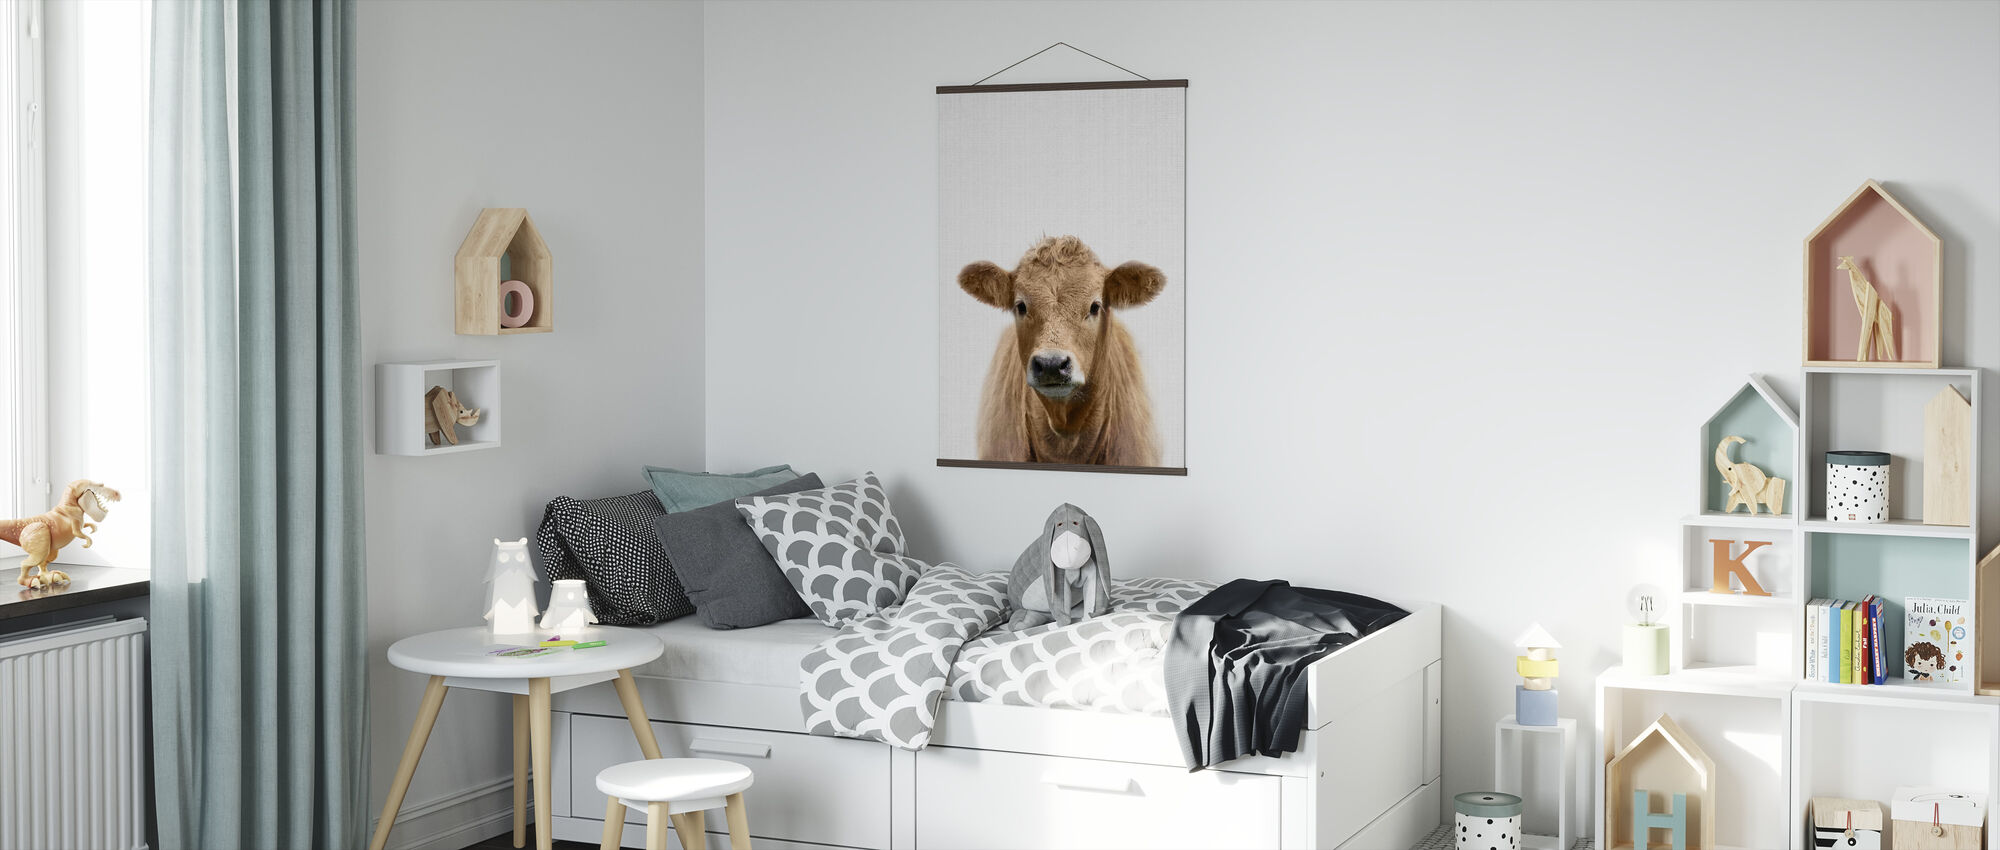 Cow - Poster - Kids Room